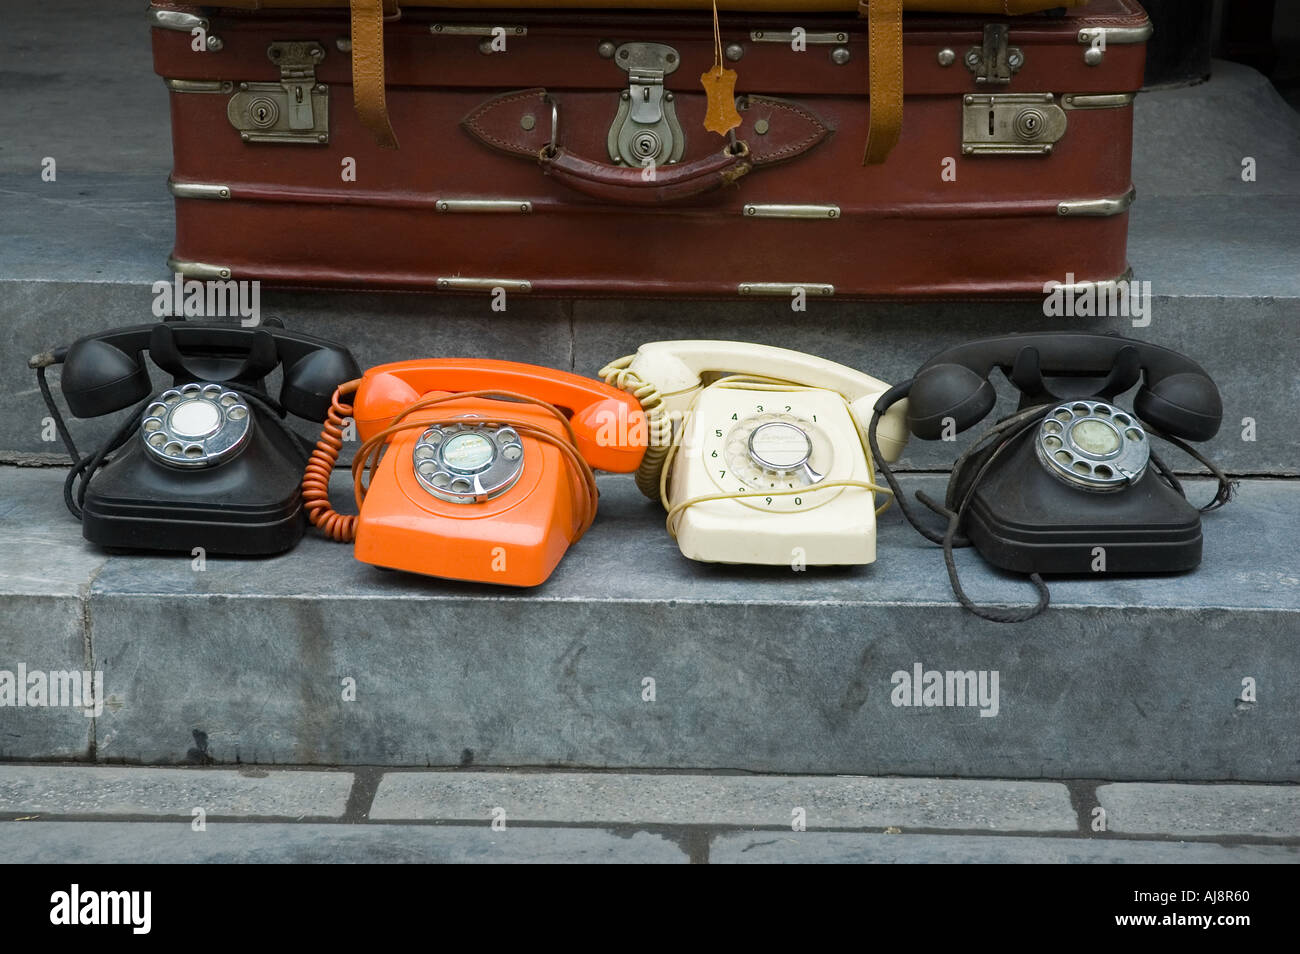 Bakelite telephones at antique market stall - Stock Image